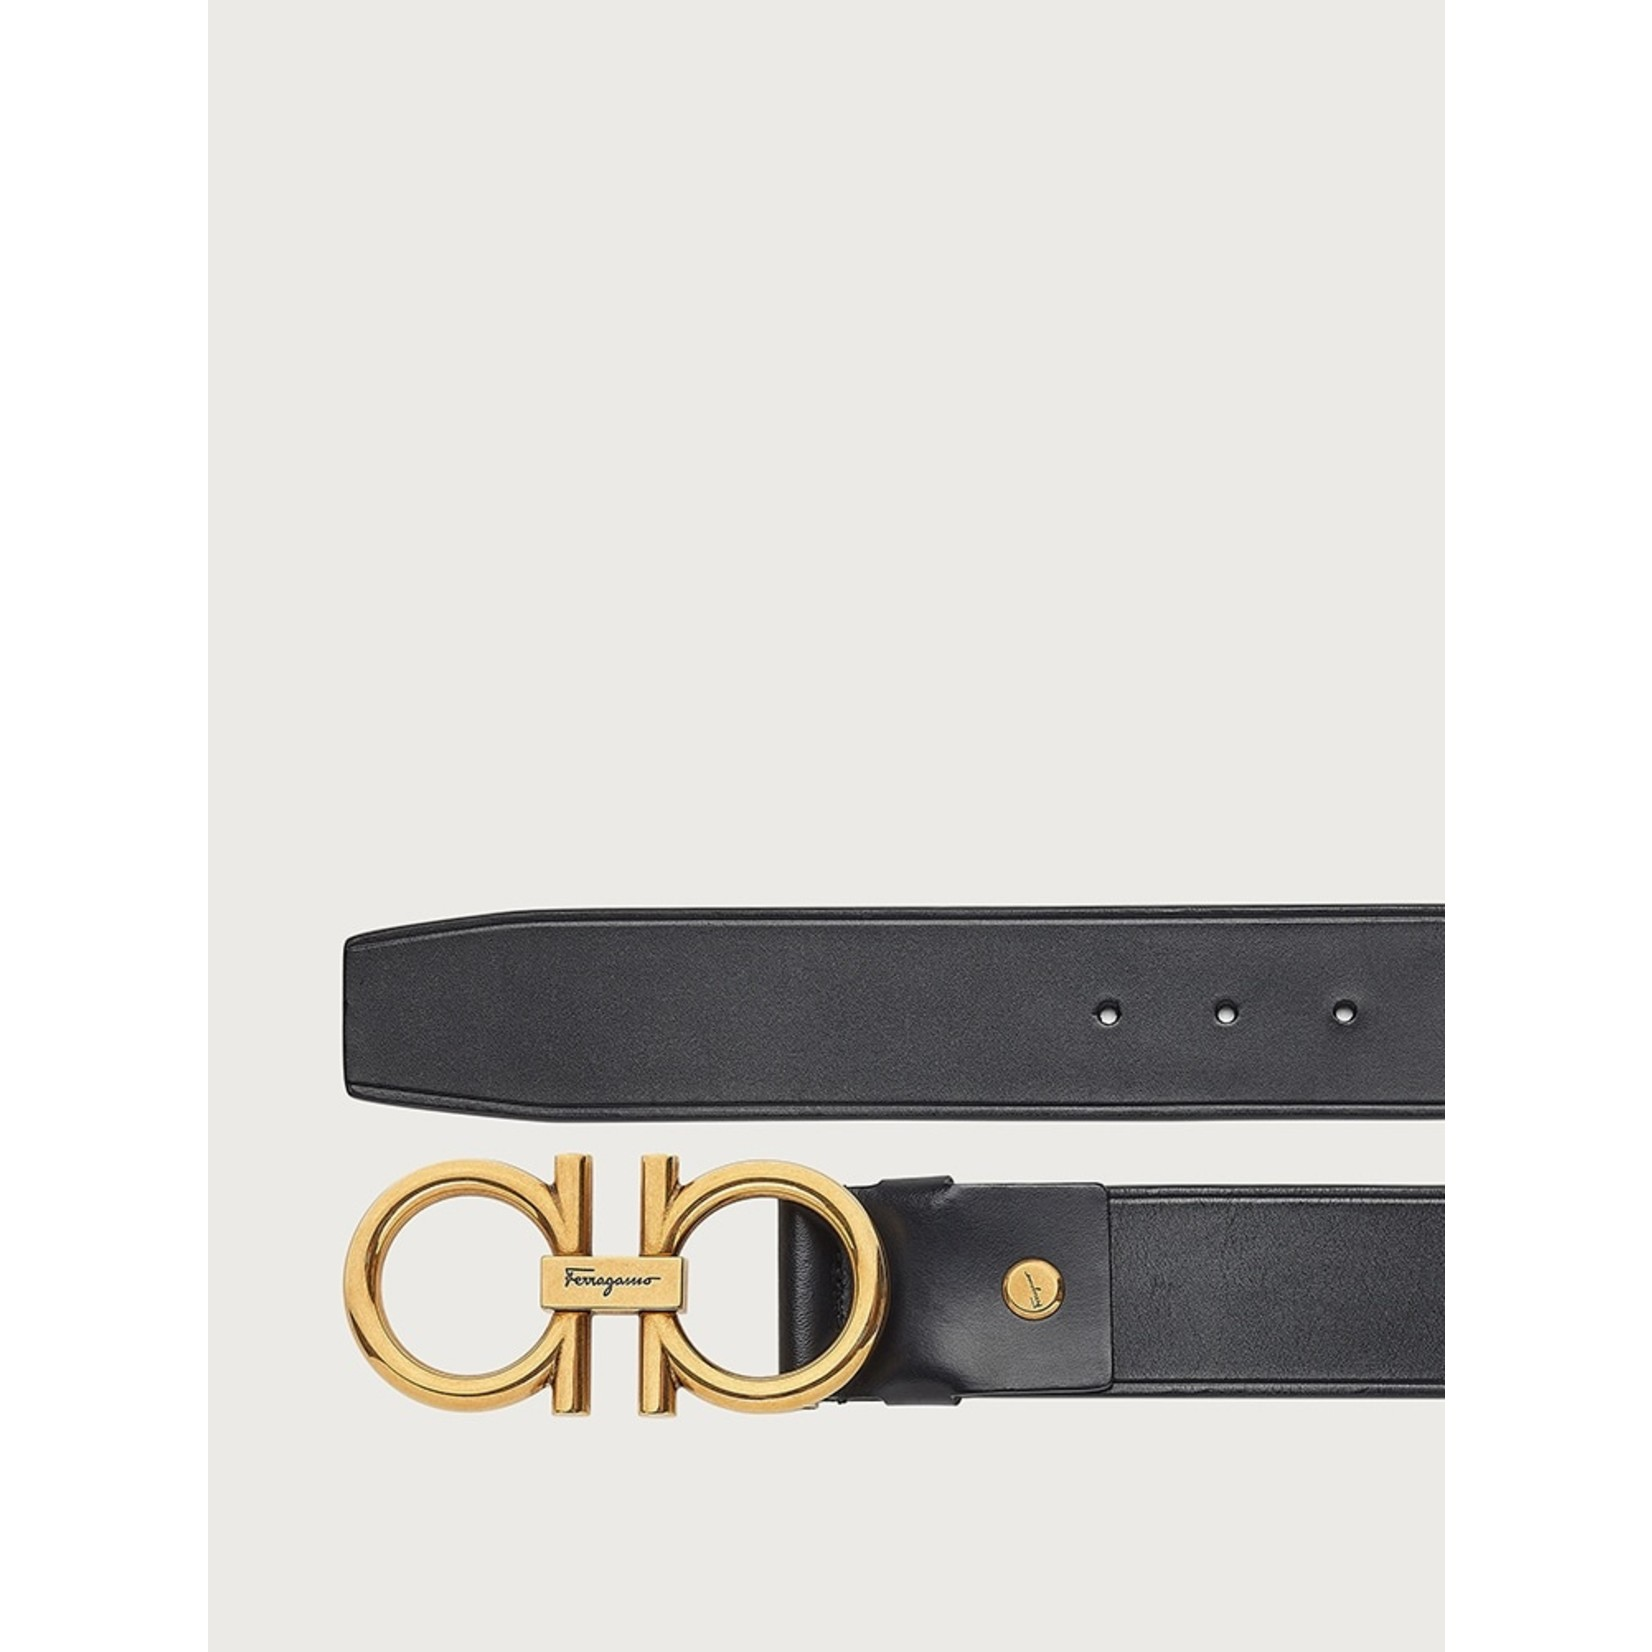 SALVATORE FERRAGAMO SALVATORE FERRAGAMO - GANCINI BELT BLACK - 702825